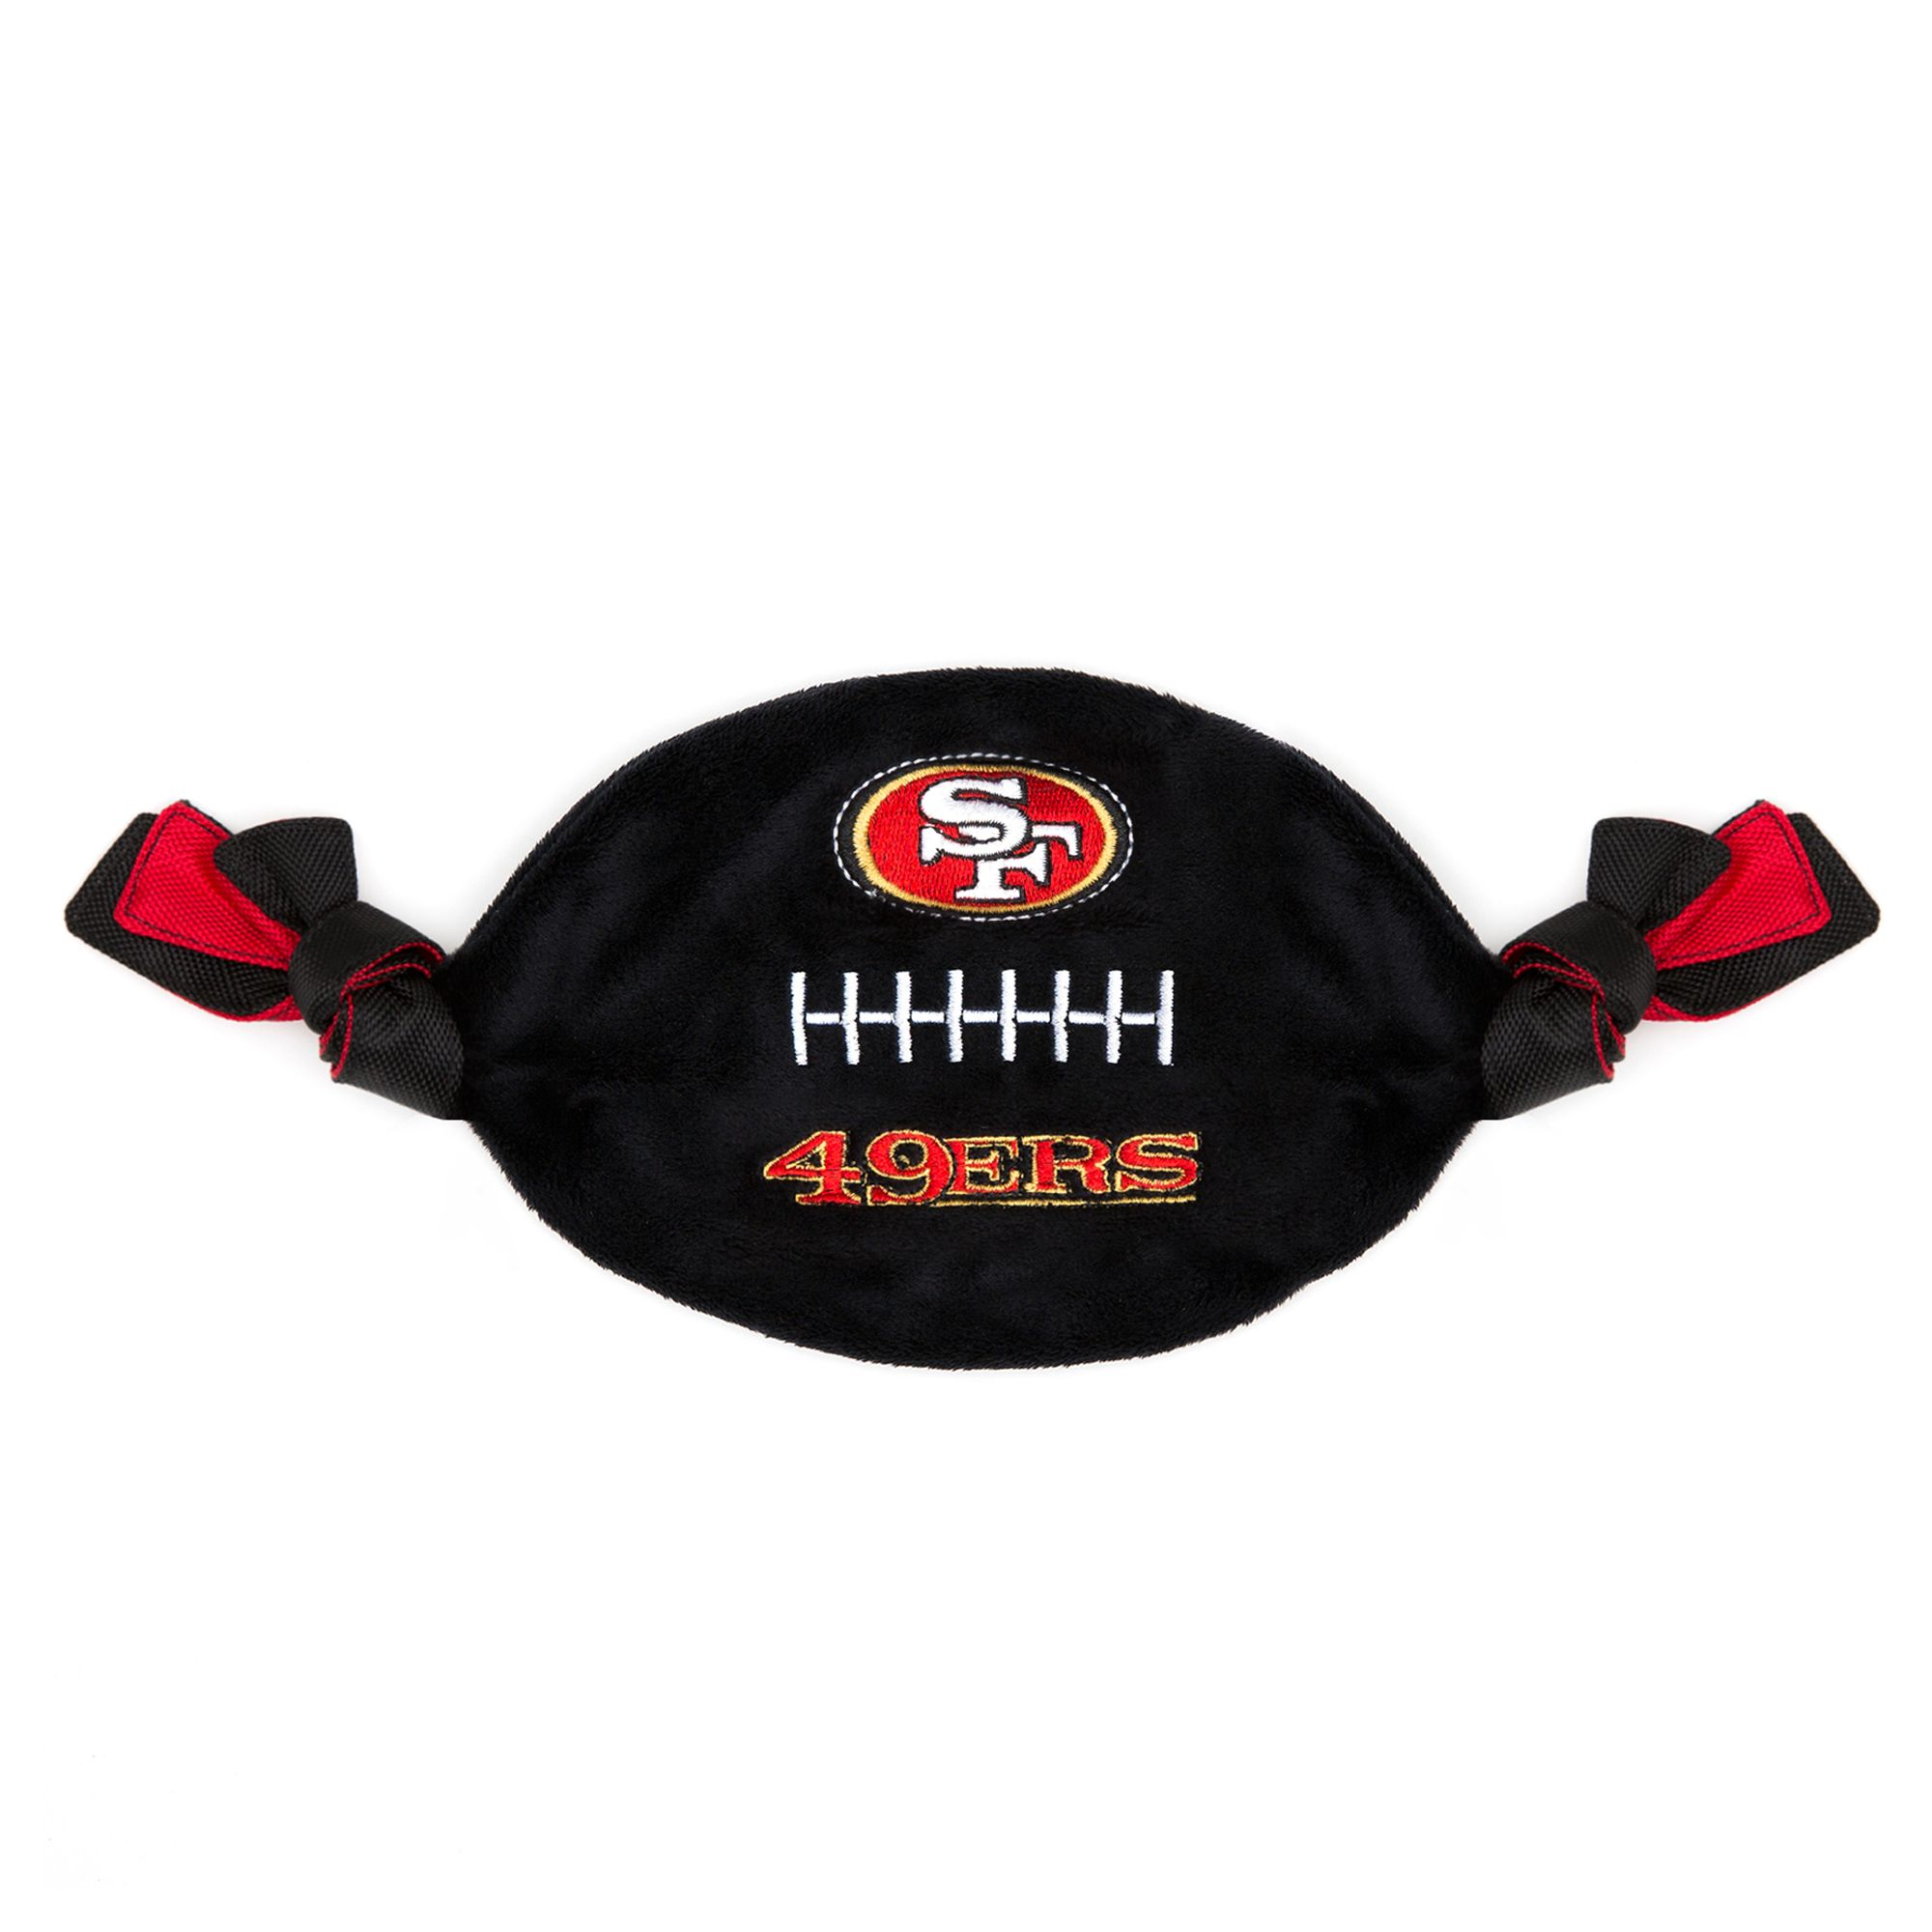 San Francisco 49ers NFL Flattie Crinkle Football Toy 5259767